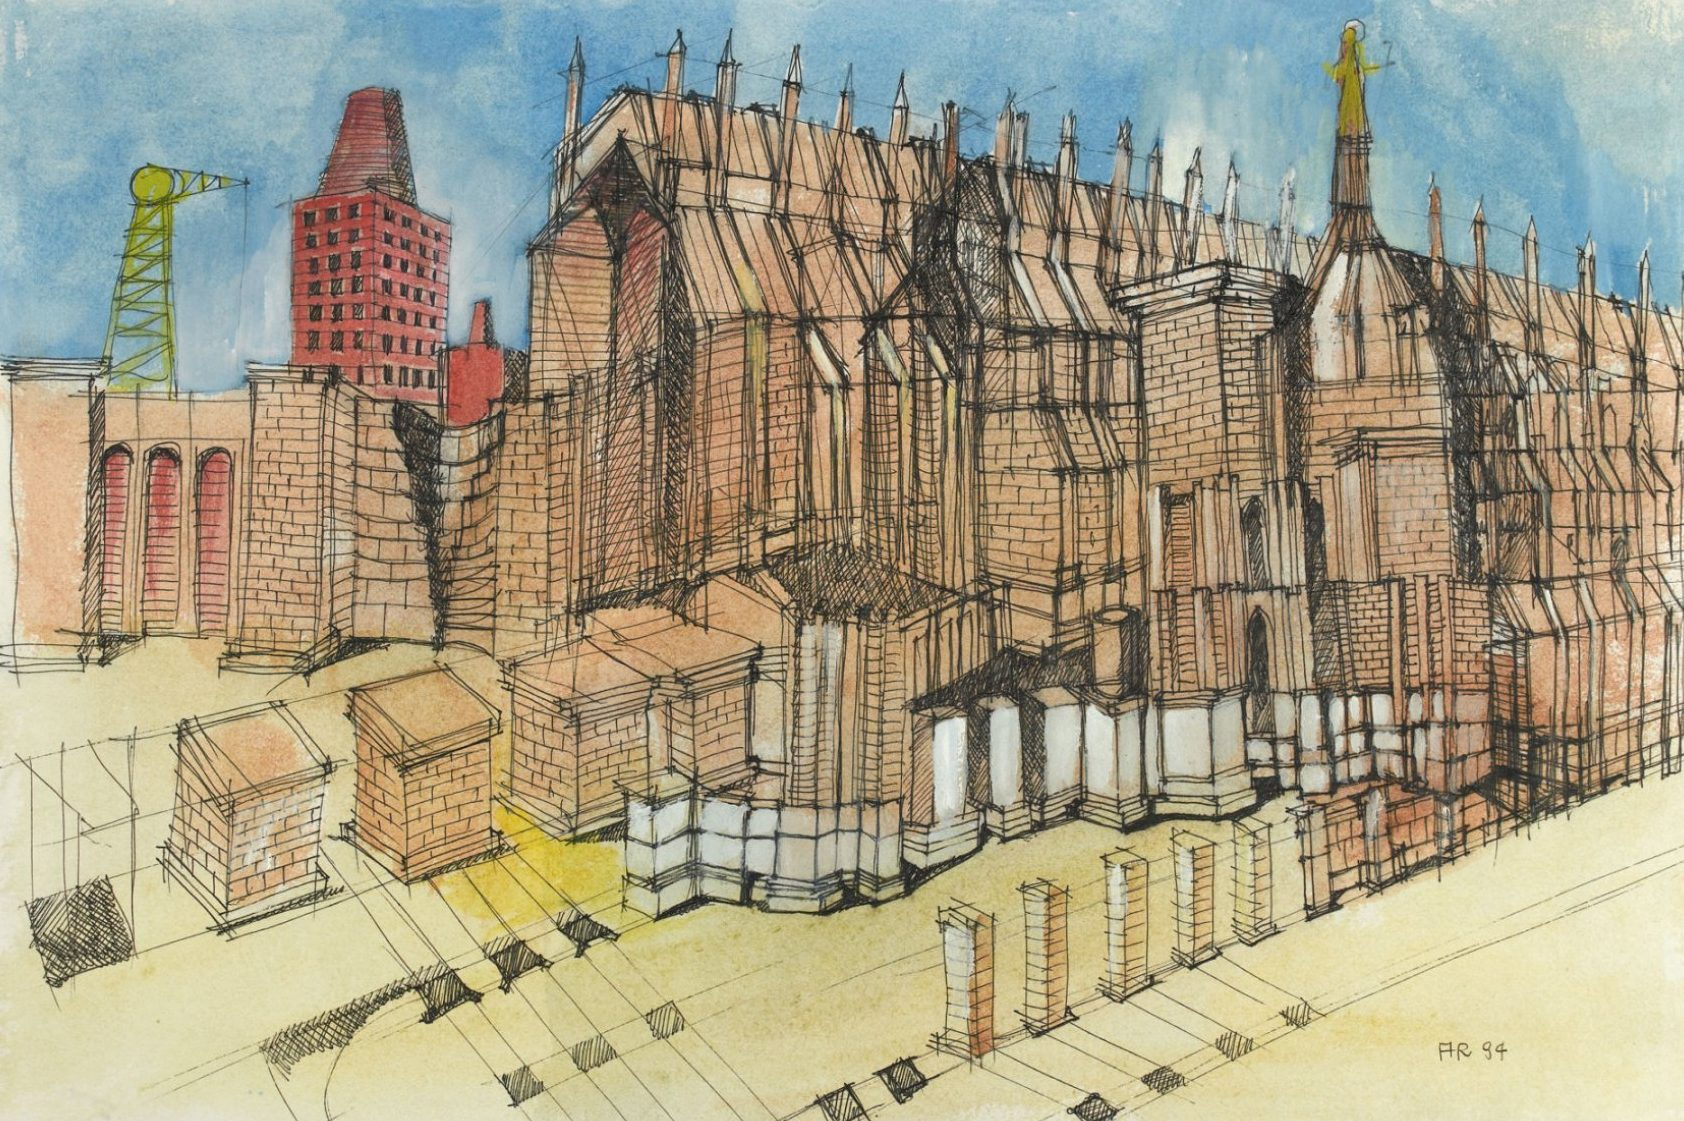 Aldo Rossi Untitled architectural drawing - Landscape